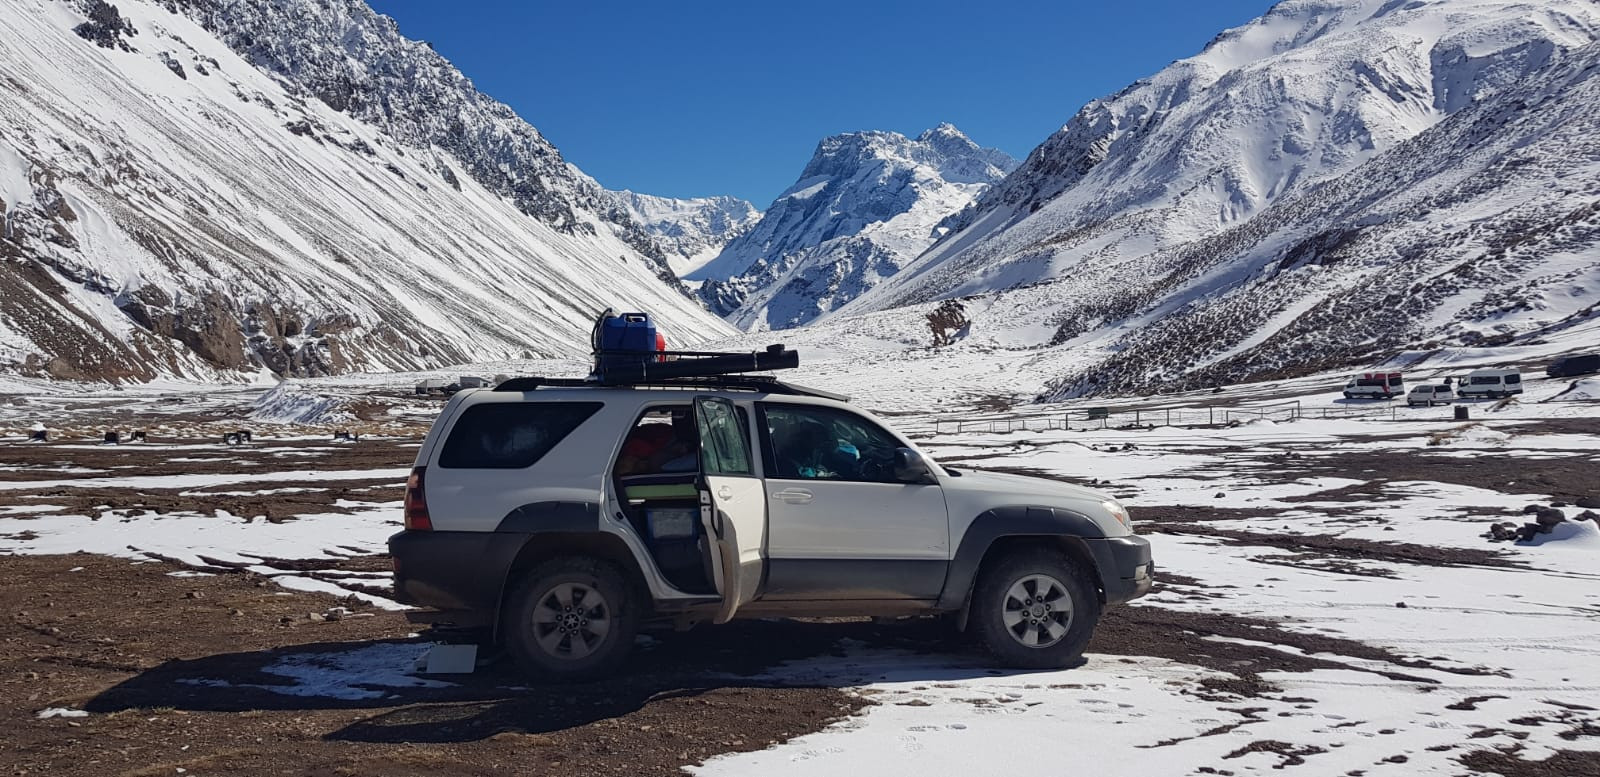 Toyota 4runner camper for sale chile